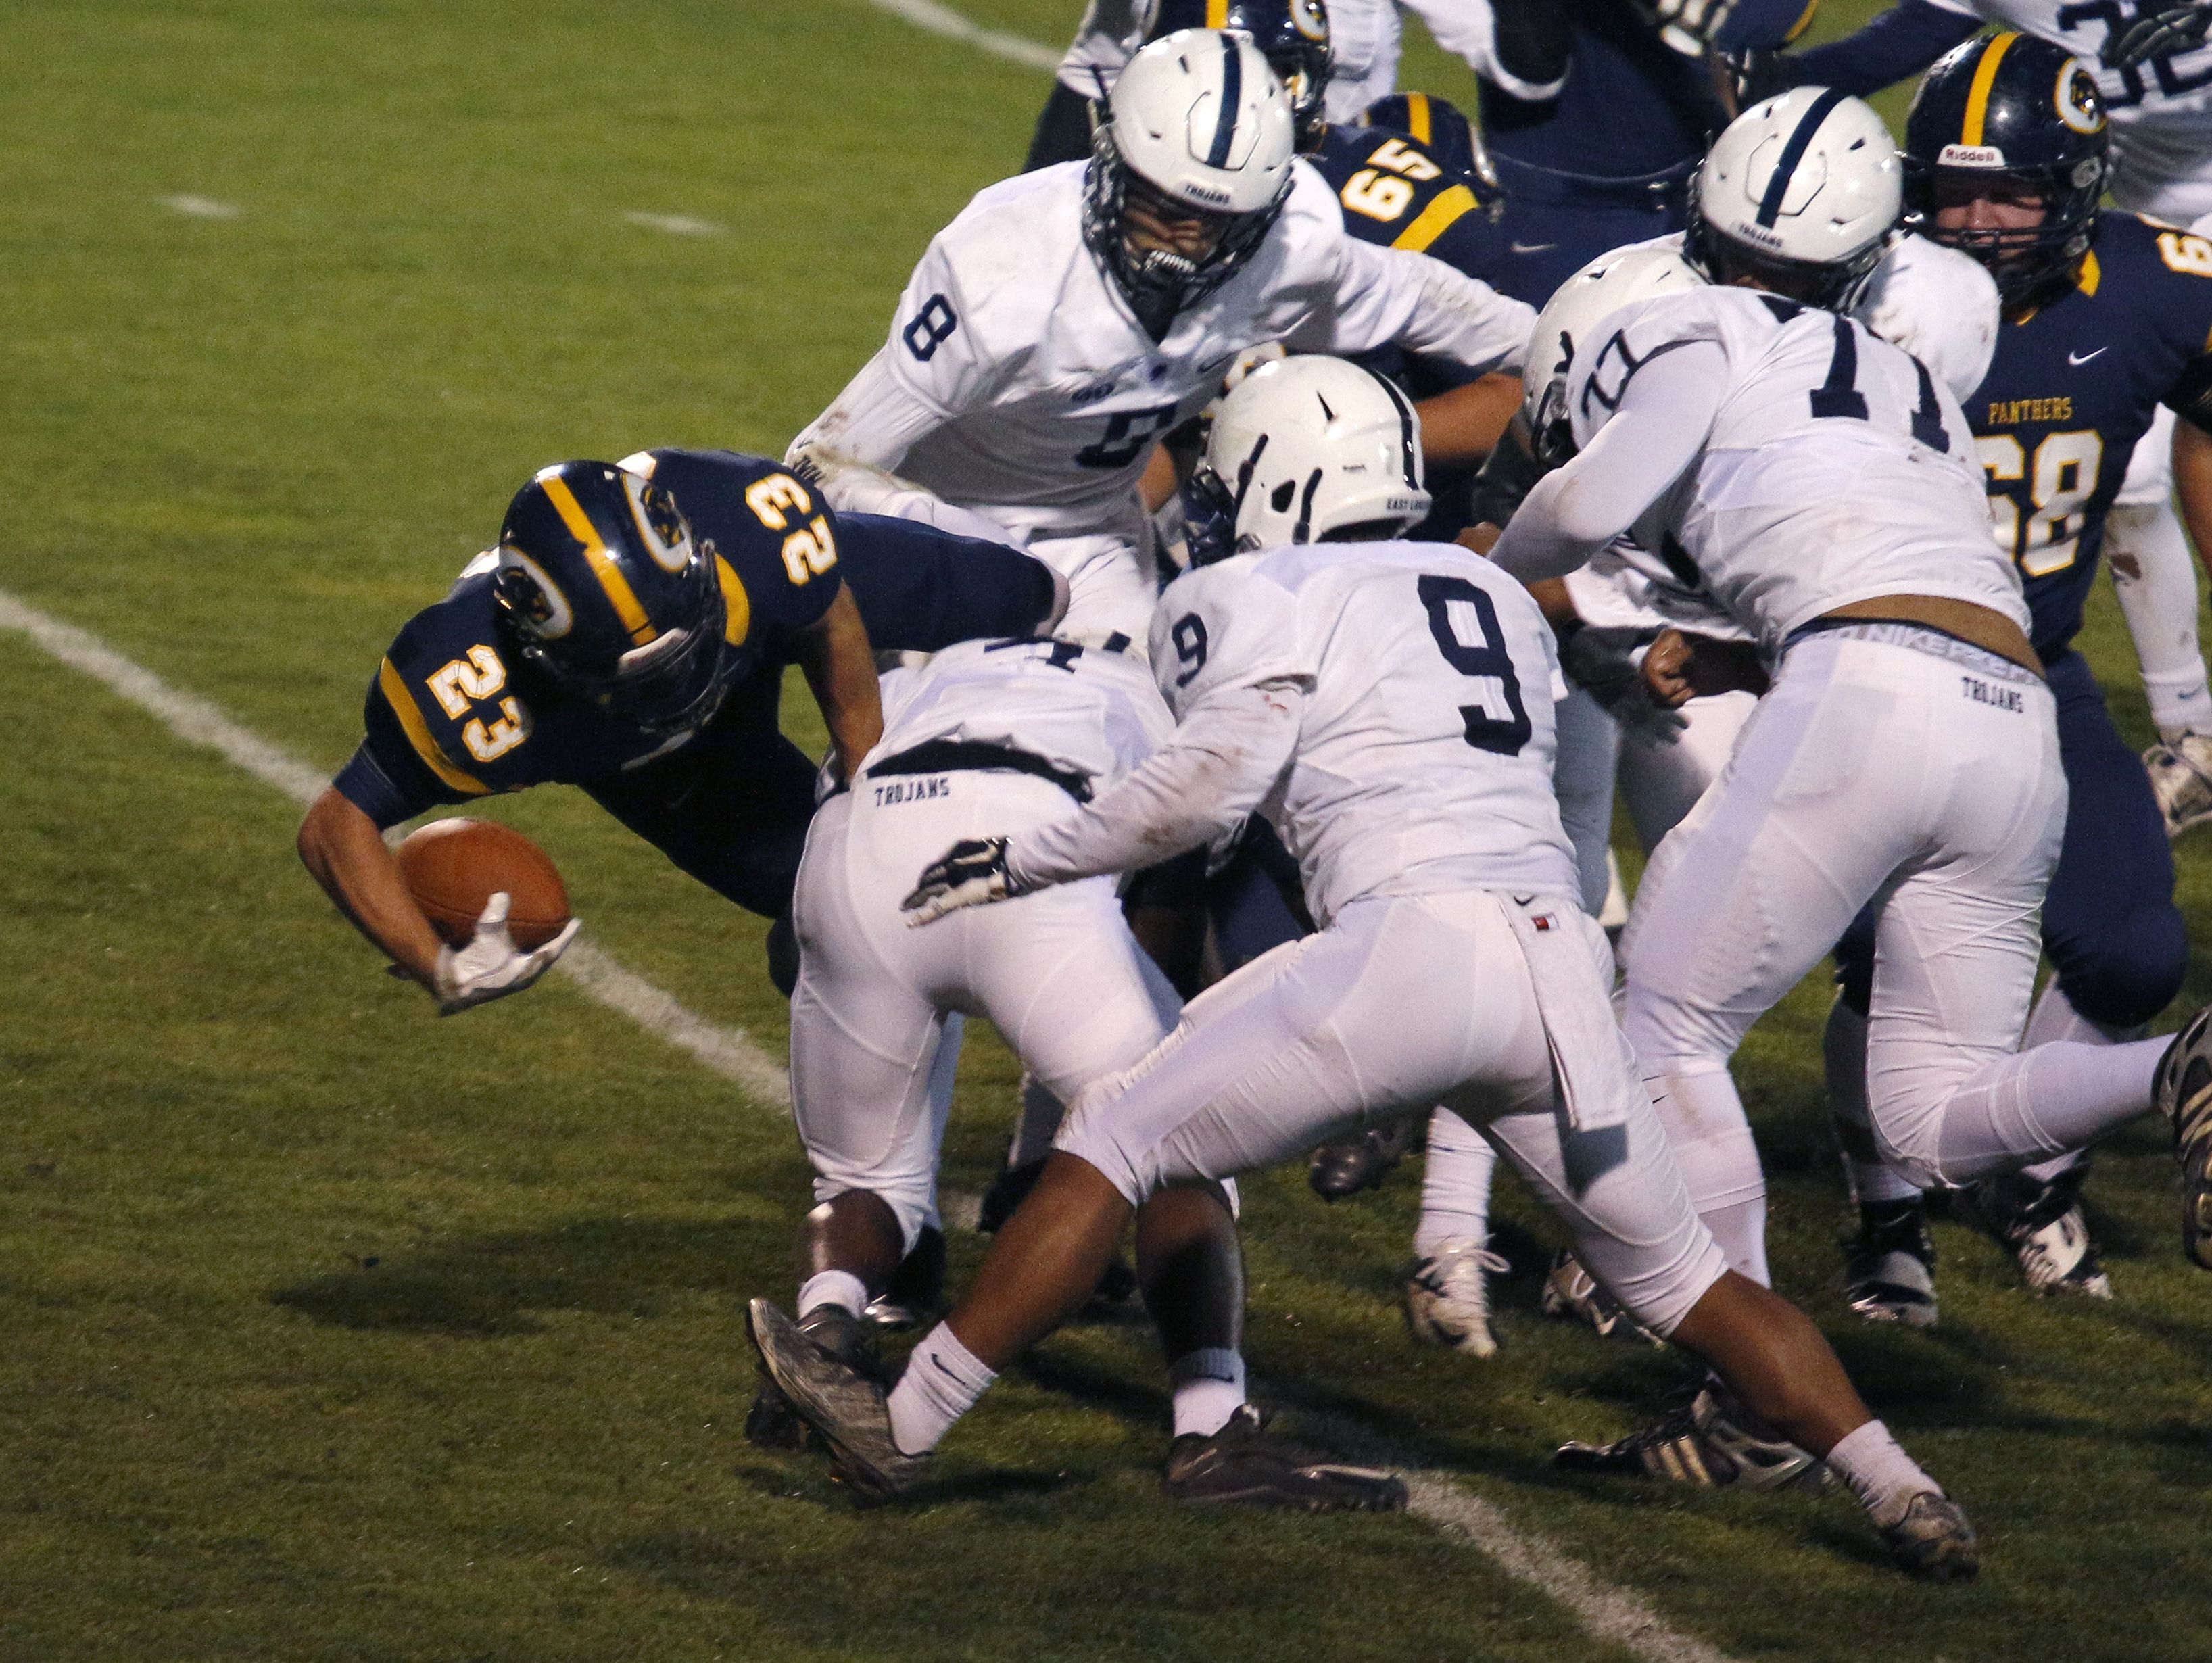 DeWitt's JD Ross (23) dives in for a touchdown against East Lansing's Roy Bellamy-Crawford (9), Blake Underwood (8), Mykel Thornton (77) and Darian Holbrook, left, Friday, Oct. 28, 2016, in DeWitt, Mich.